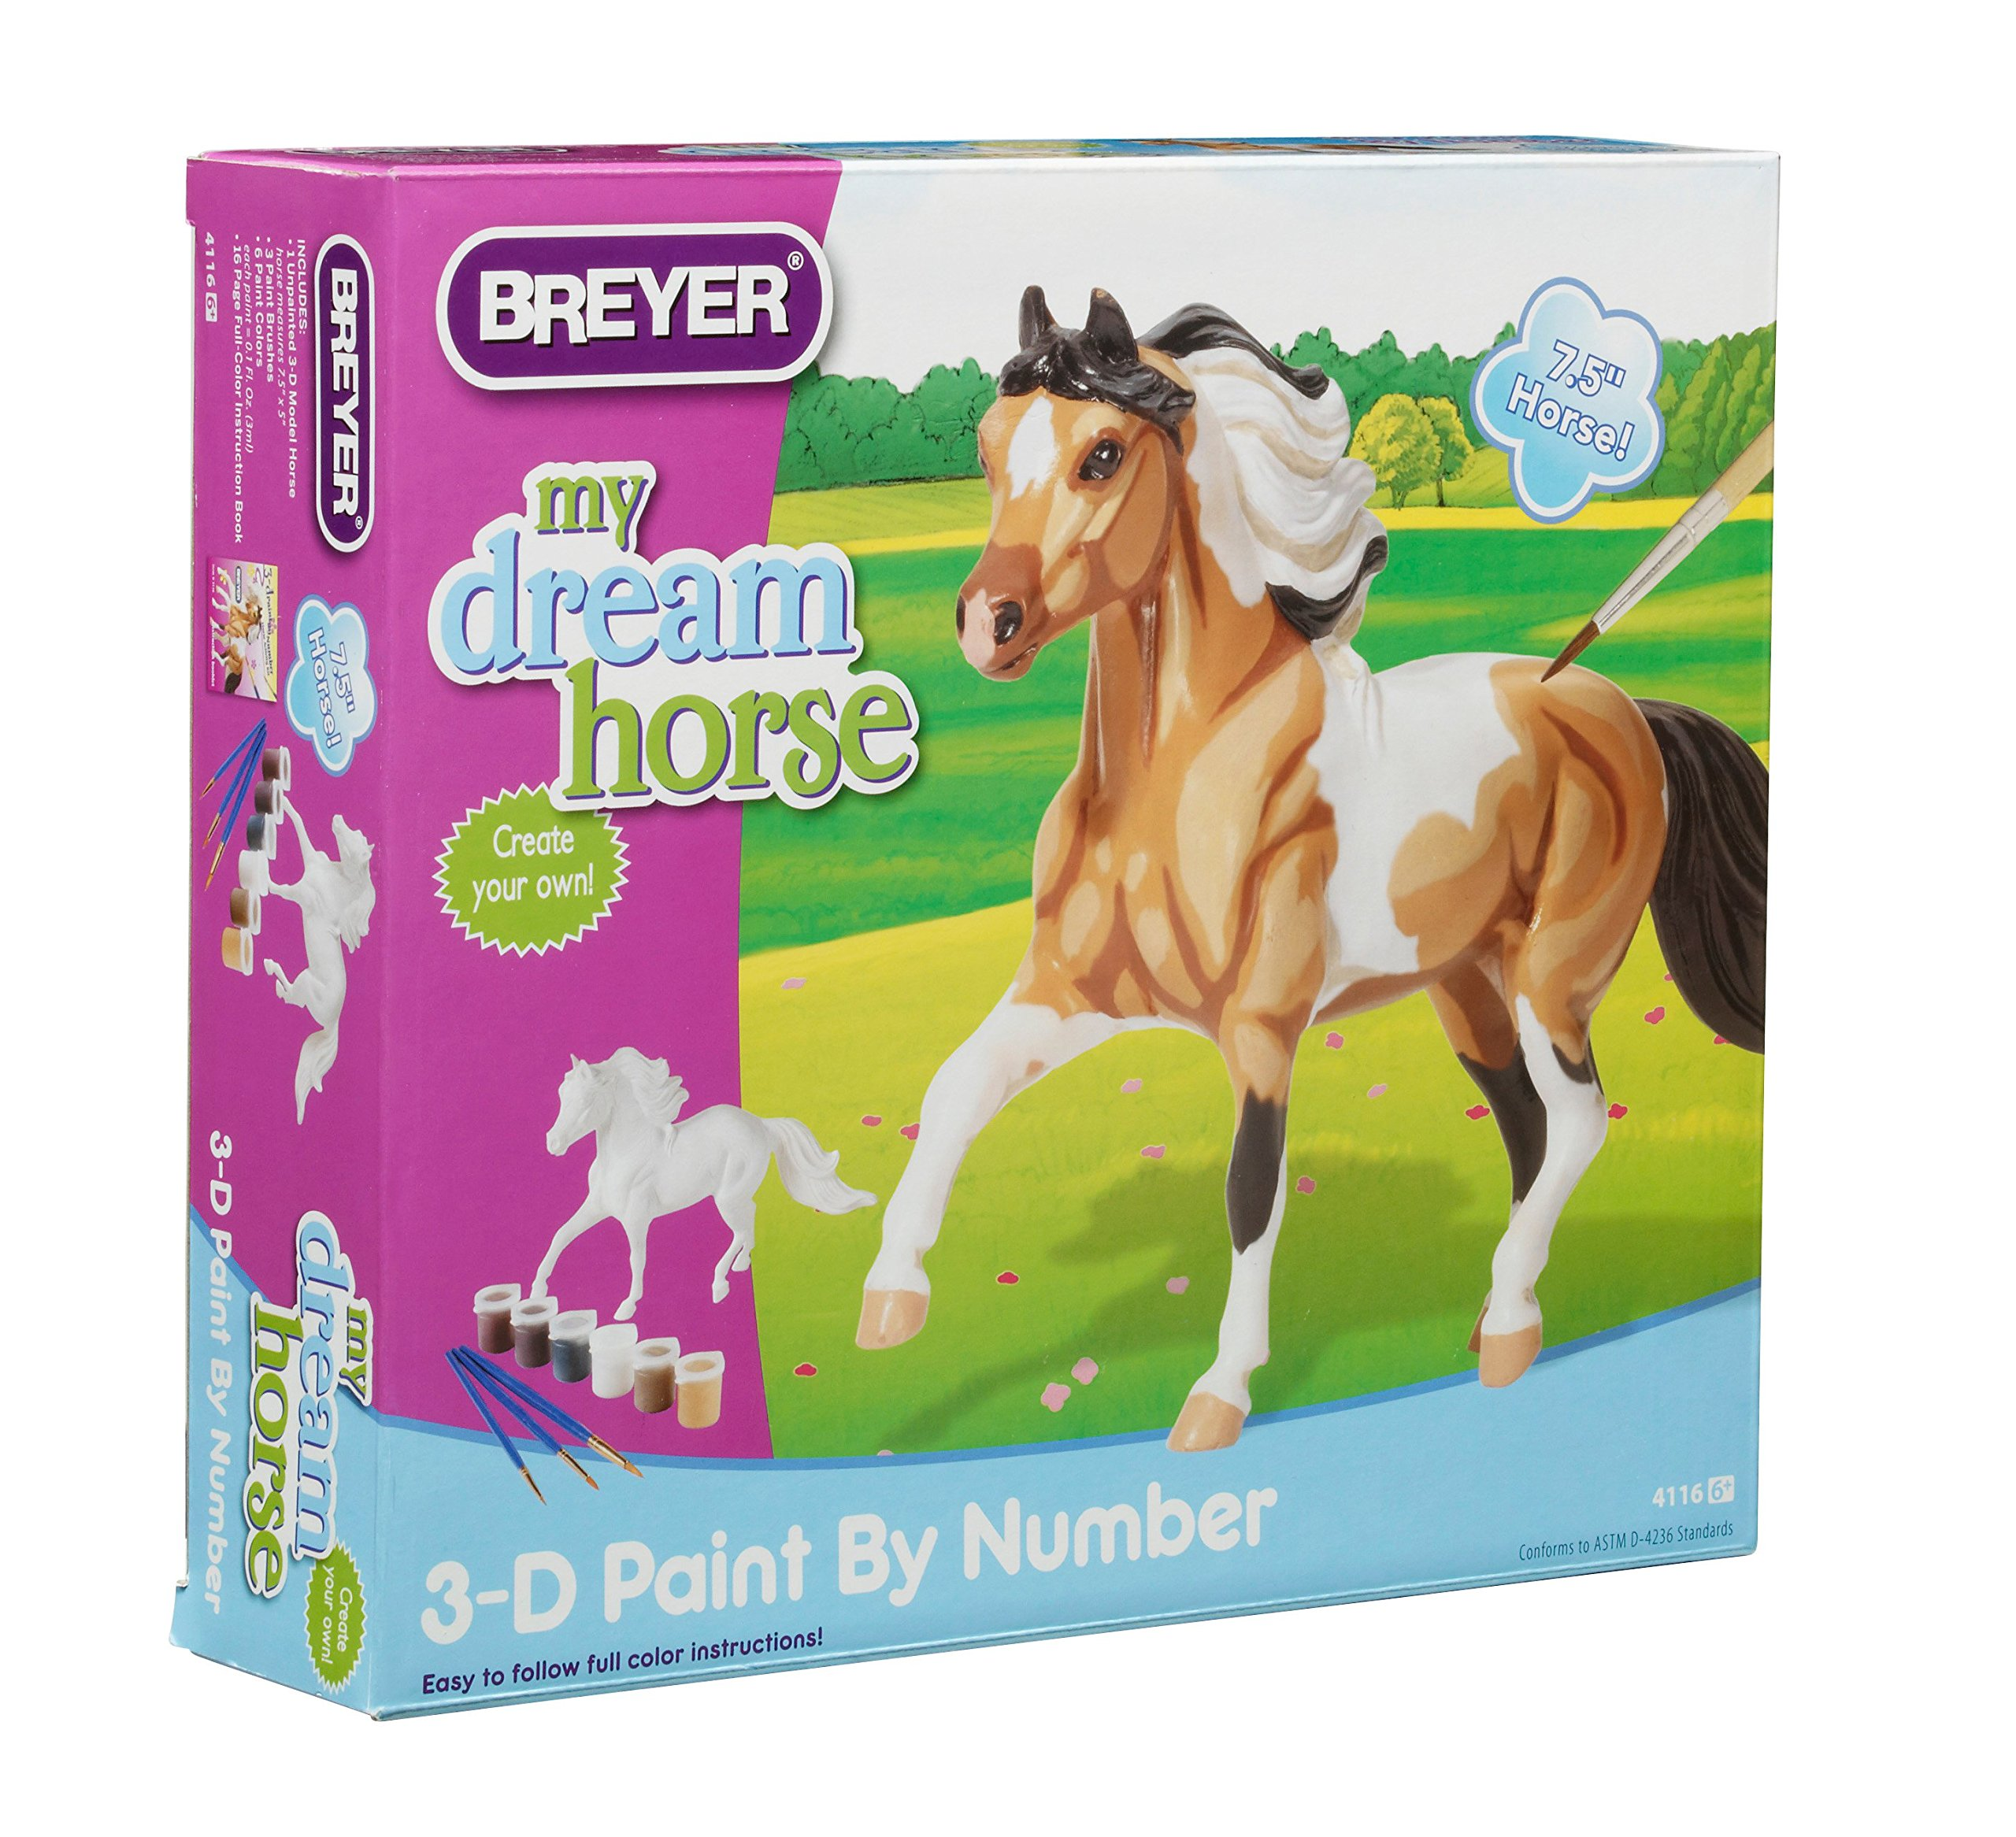 Breyer 3D Paint by Number Pinto Horse Craft Activity Set